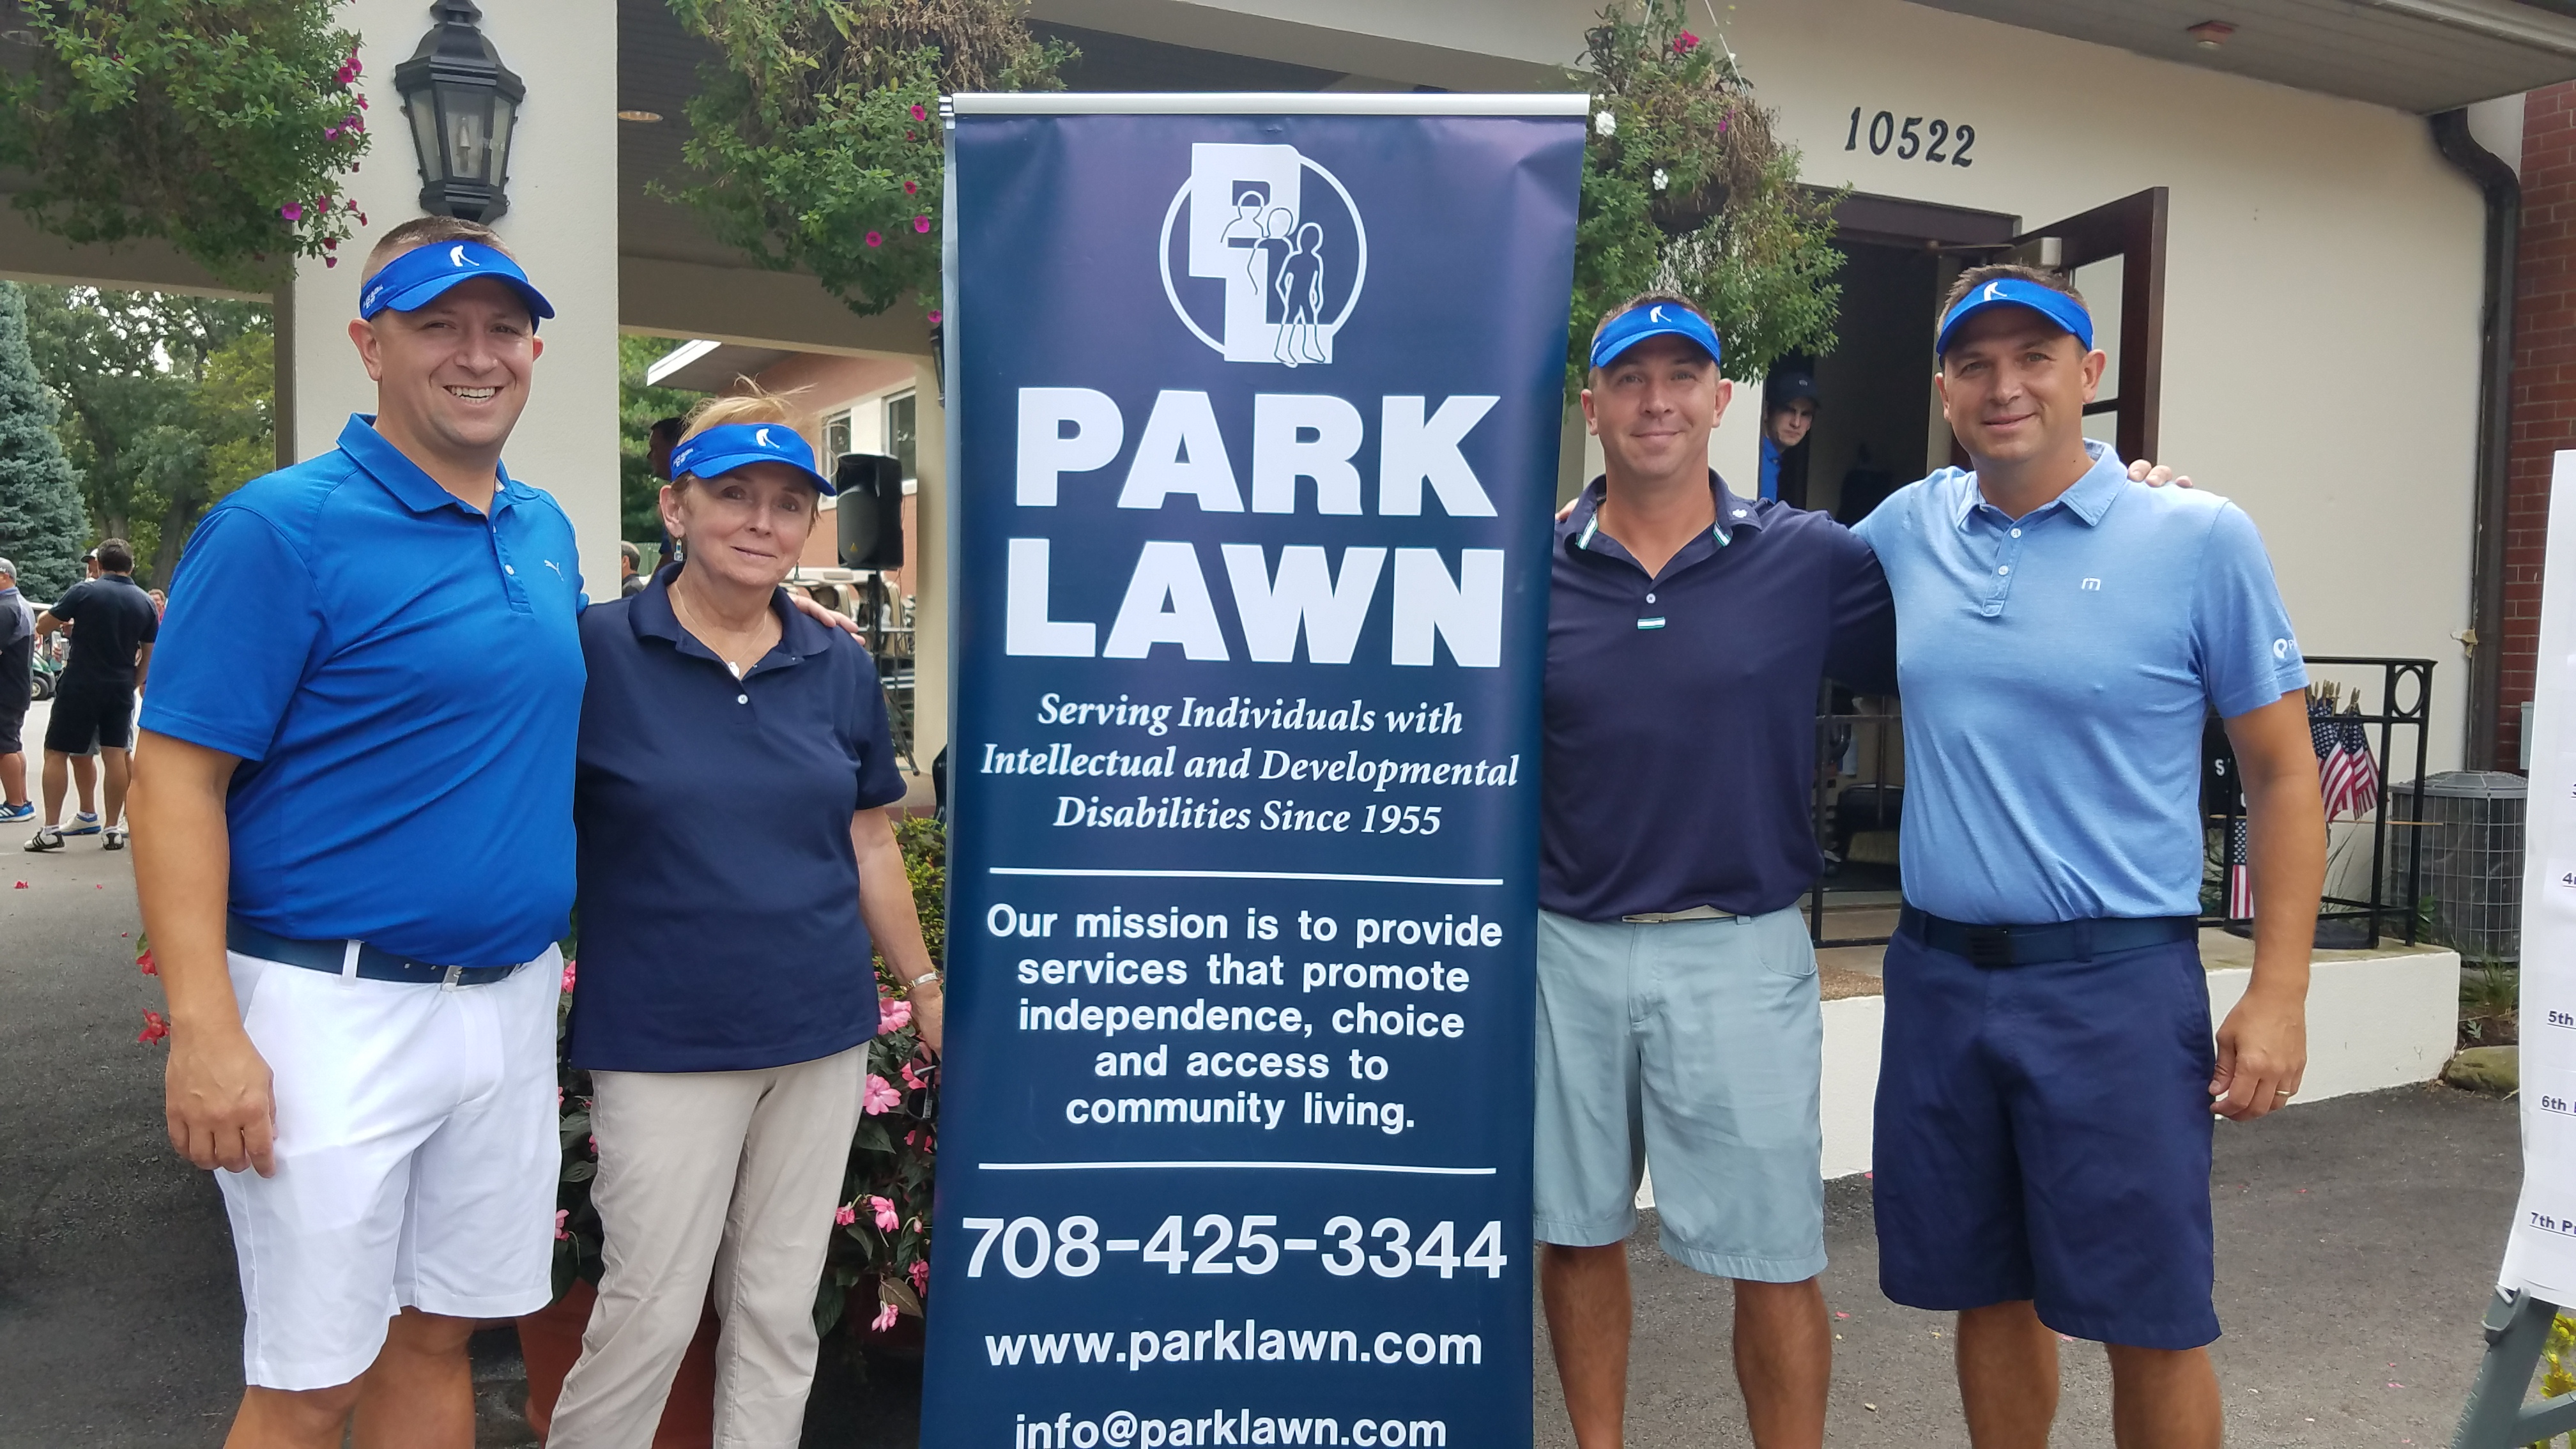 23rd Annual Mr. Juice Memorial FORE! Park Lawn - Janiszewski Family Golf Outing